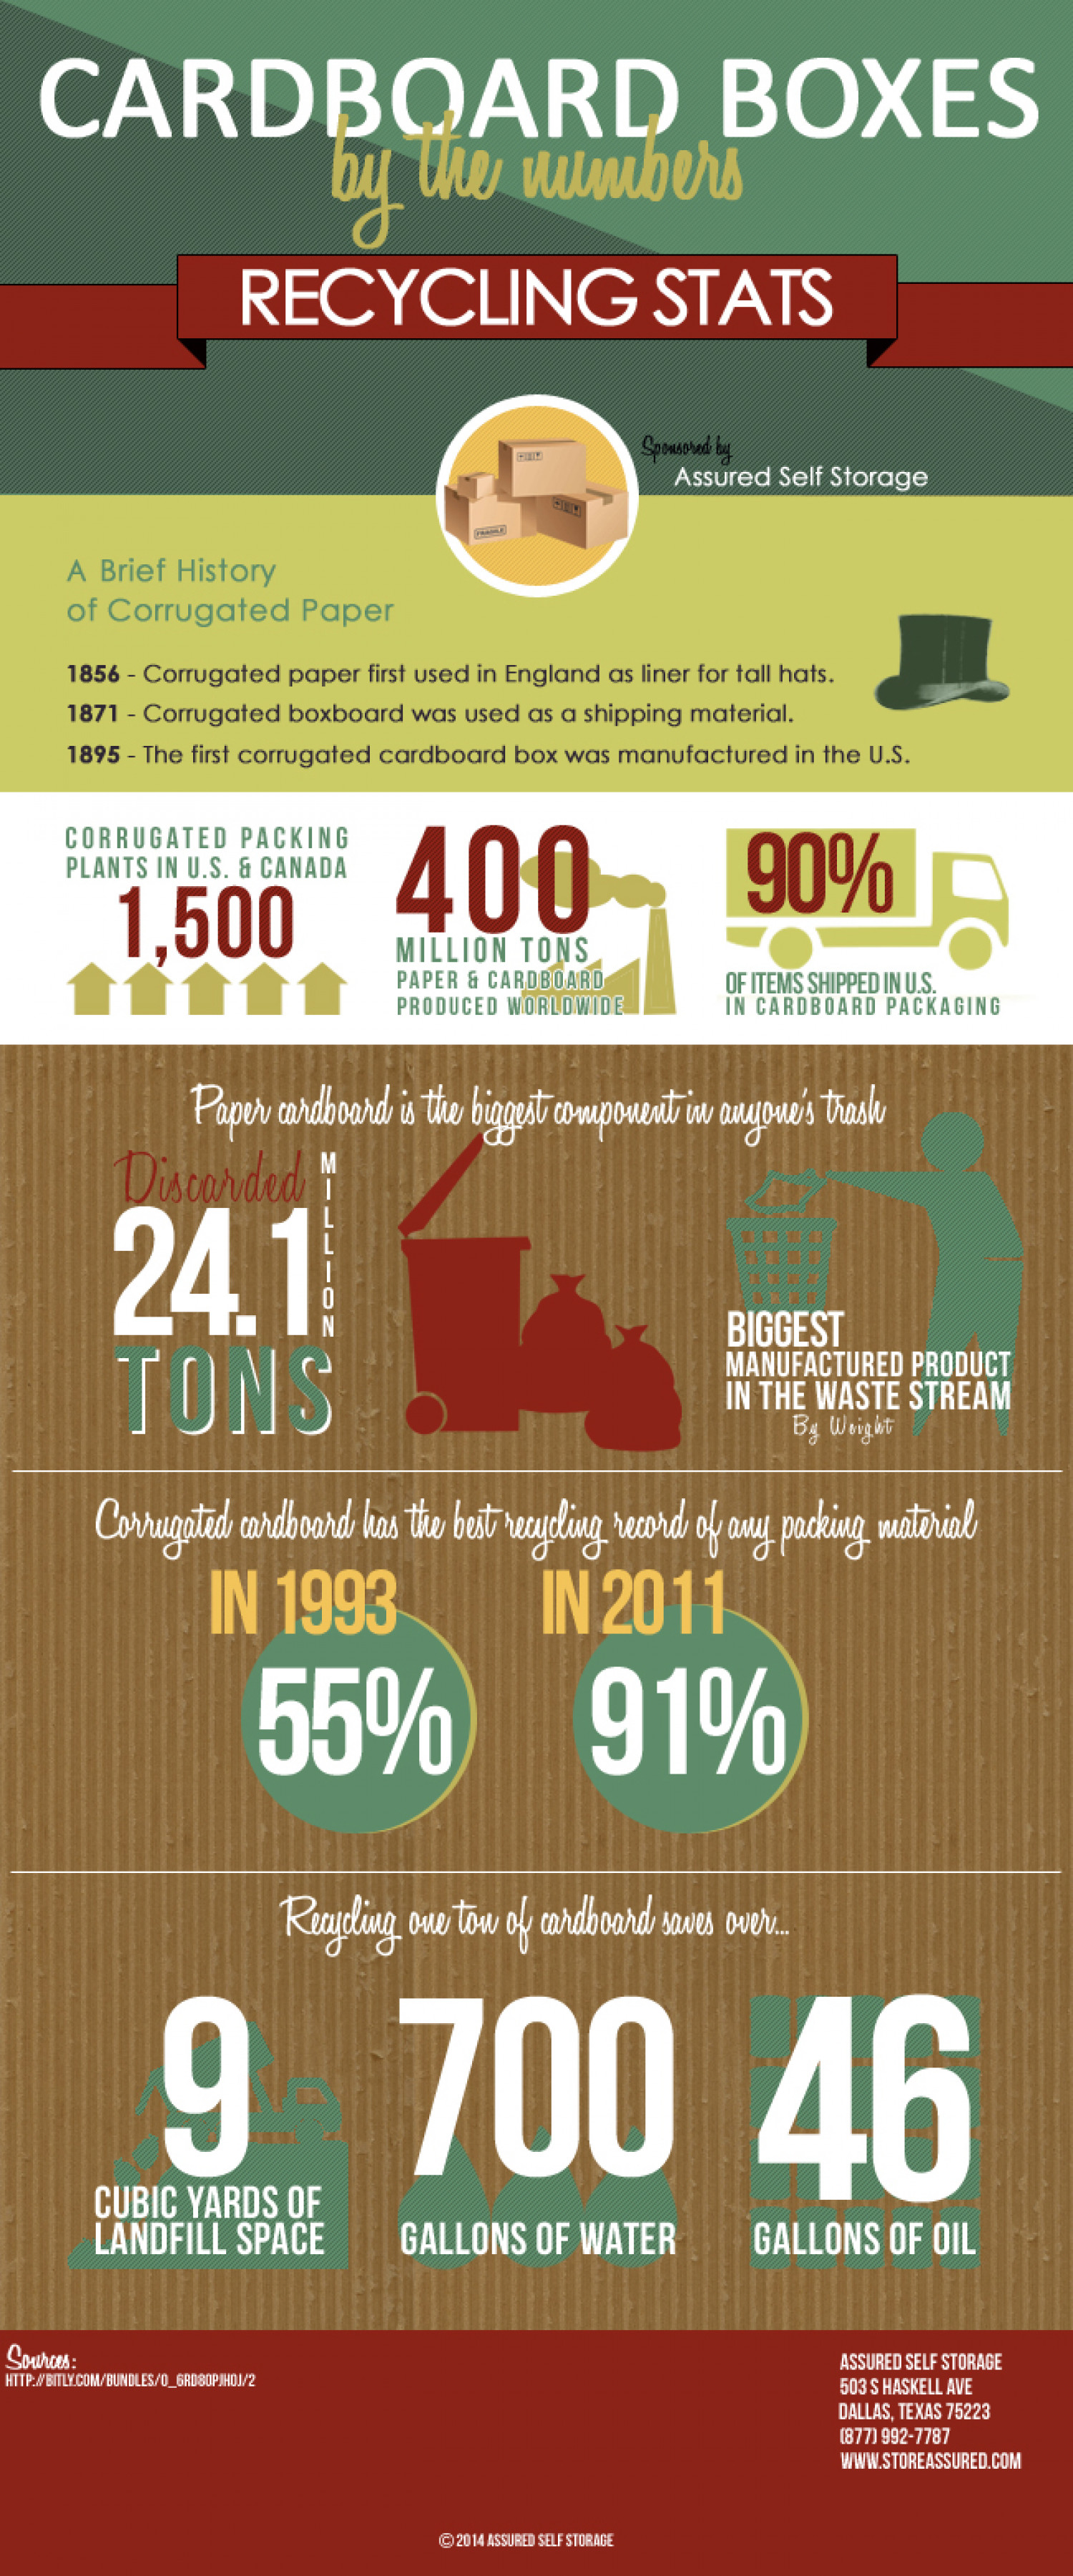 Cardboard Boxes by the Numbers Infographic